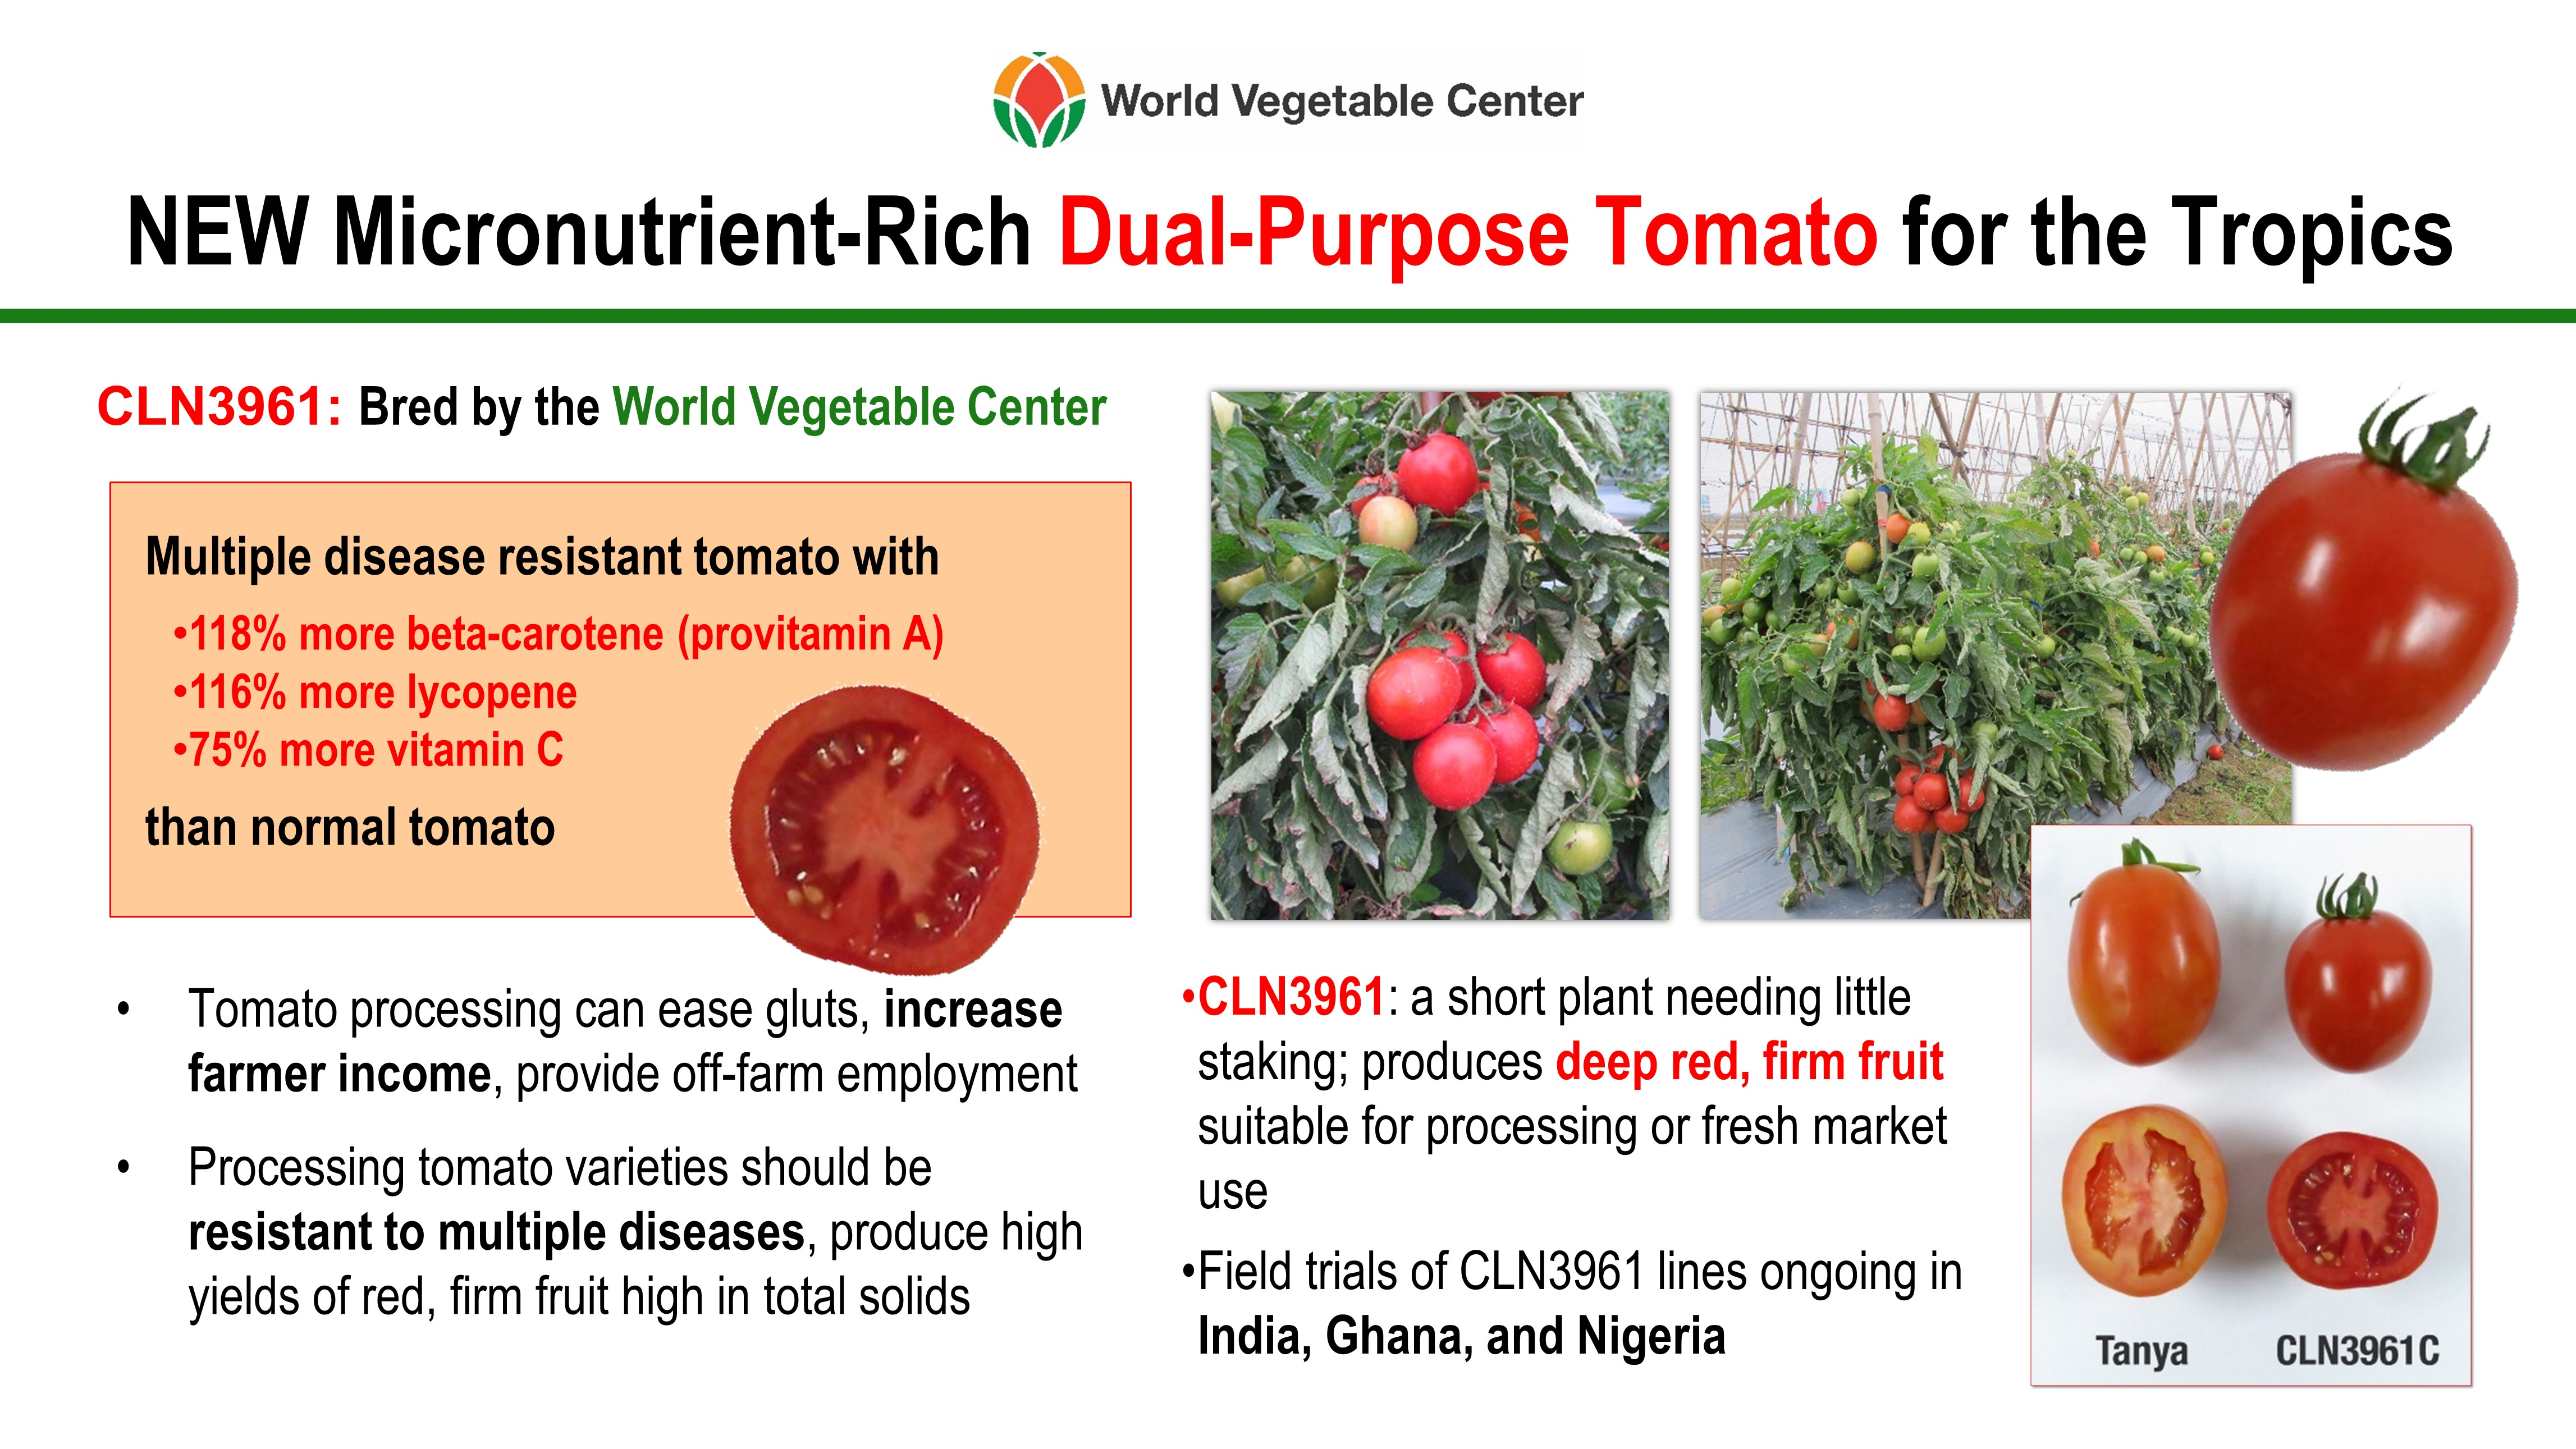 New Micronutrient-Rich Dual-Purpose Tomato for the Tropics